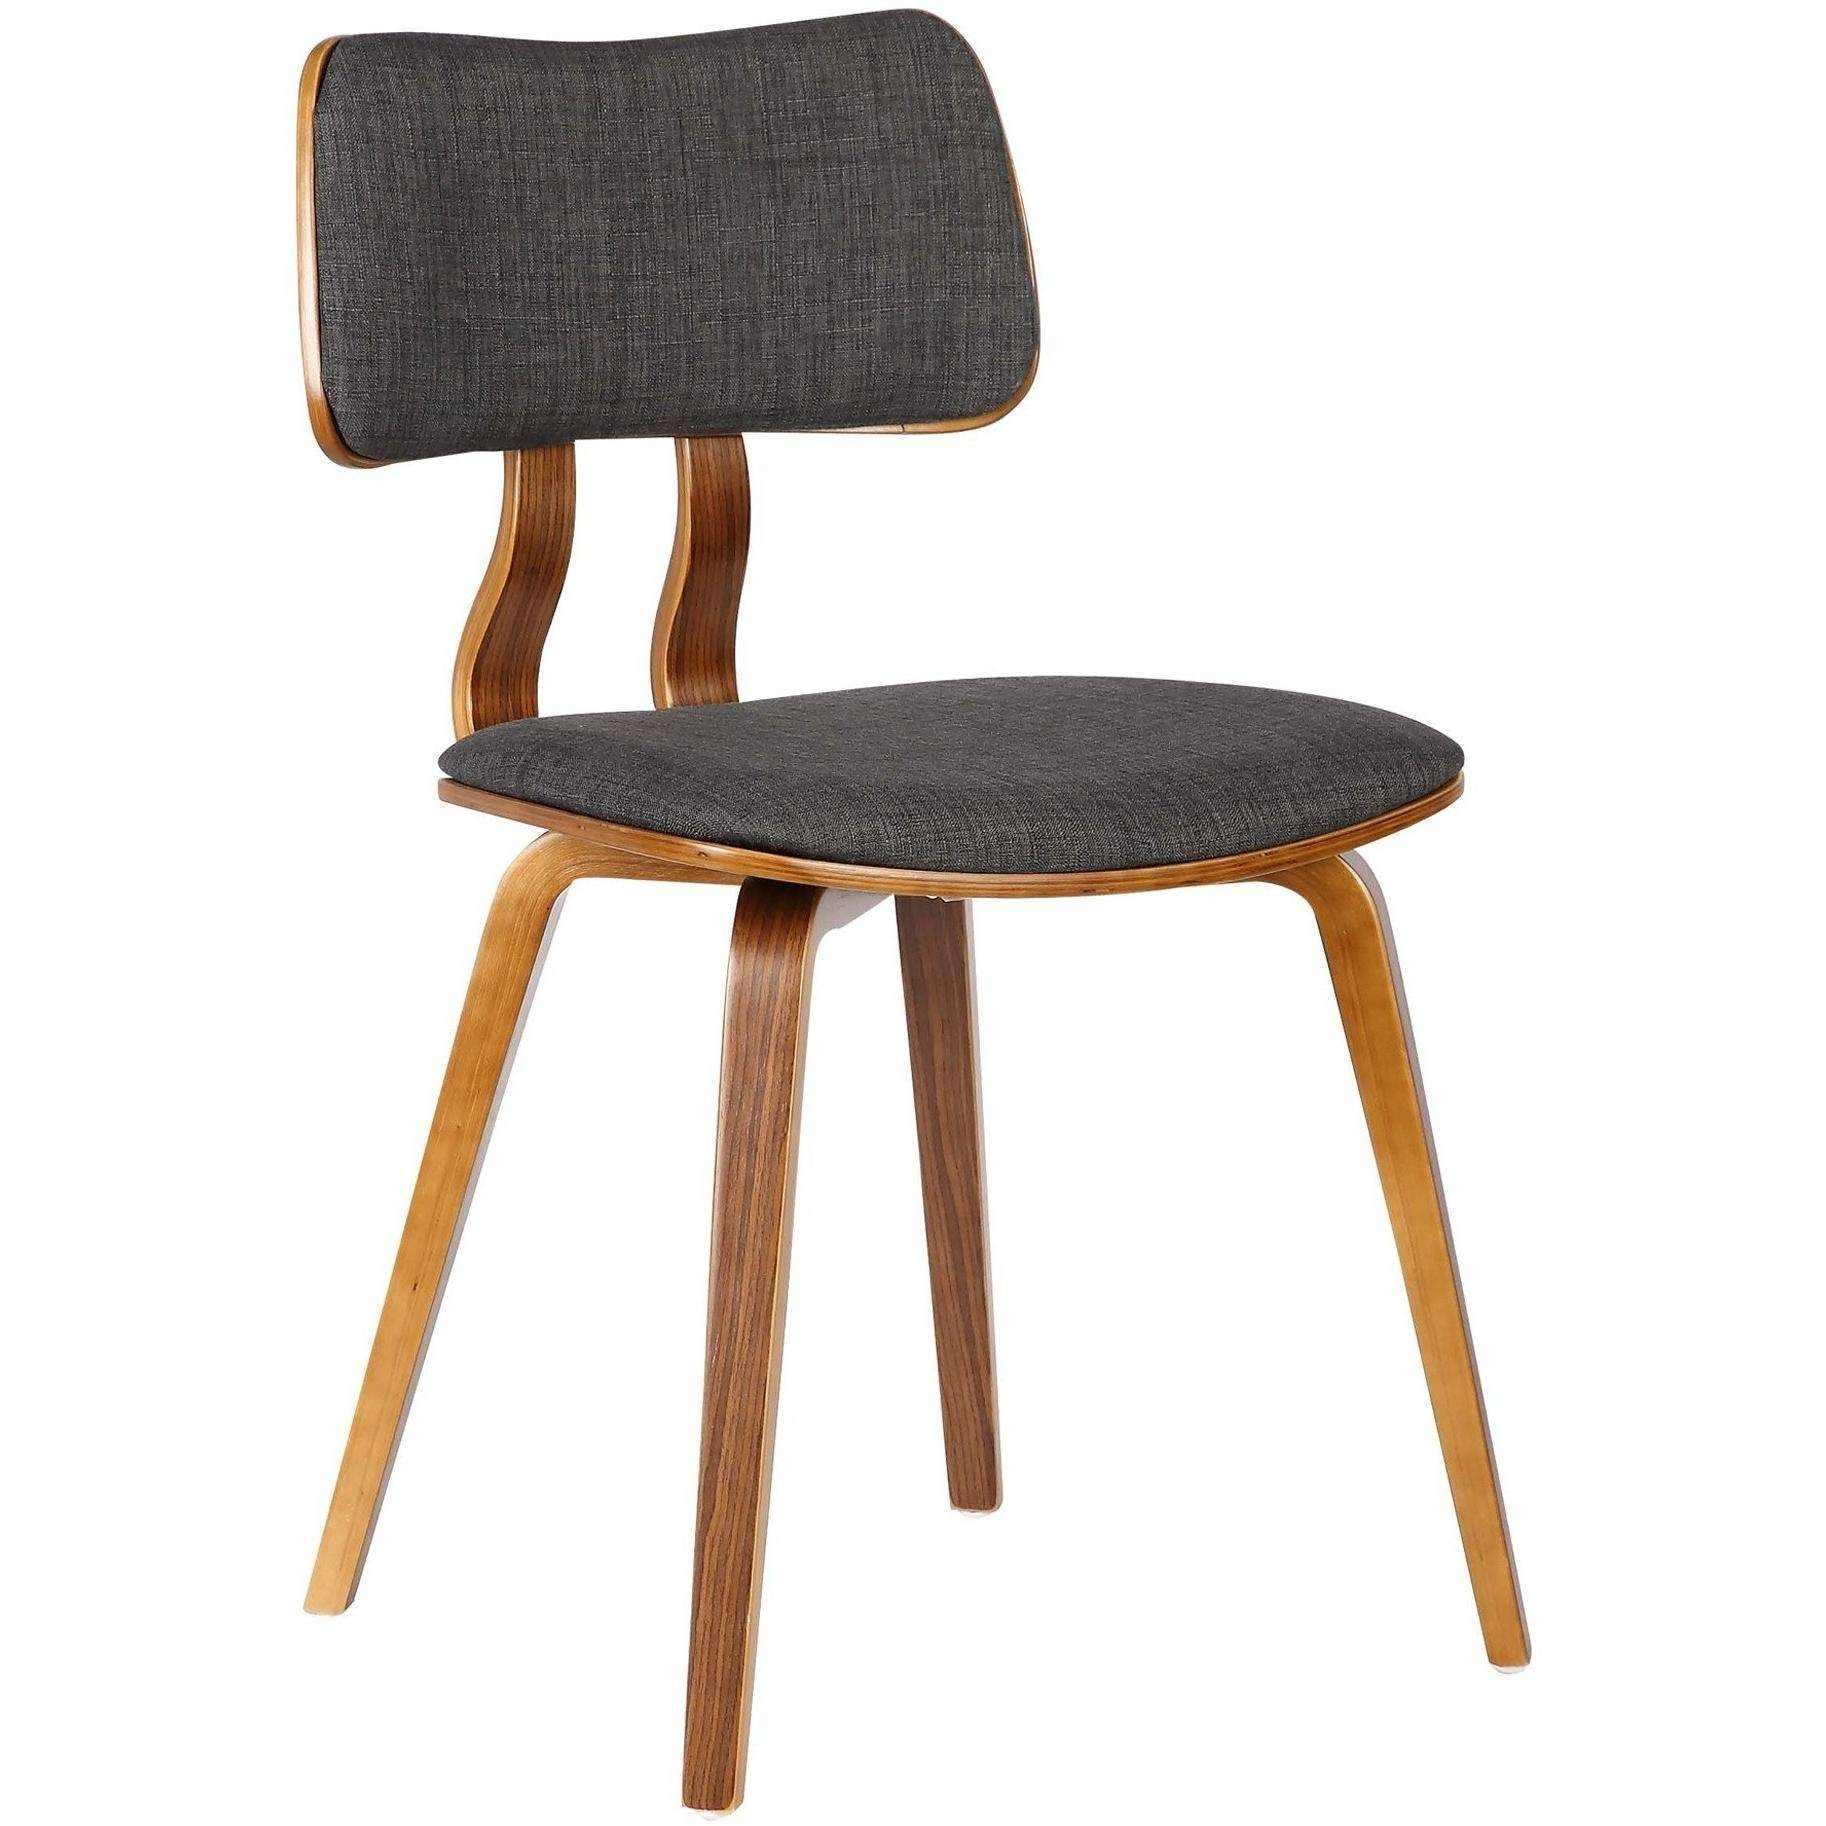 Armen Living Jaguar Mid Century Dining Chair in Walnut Wood and